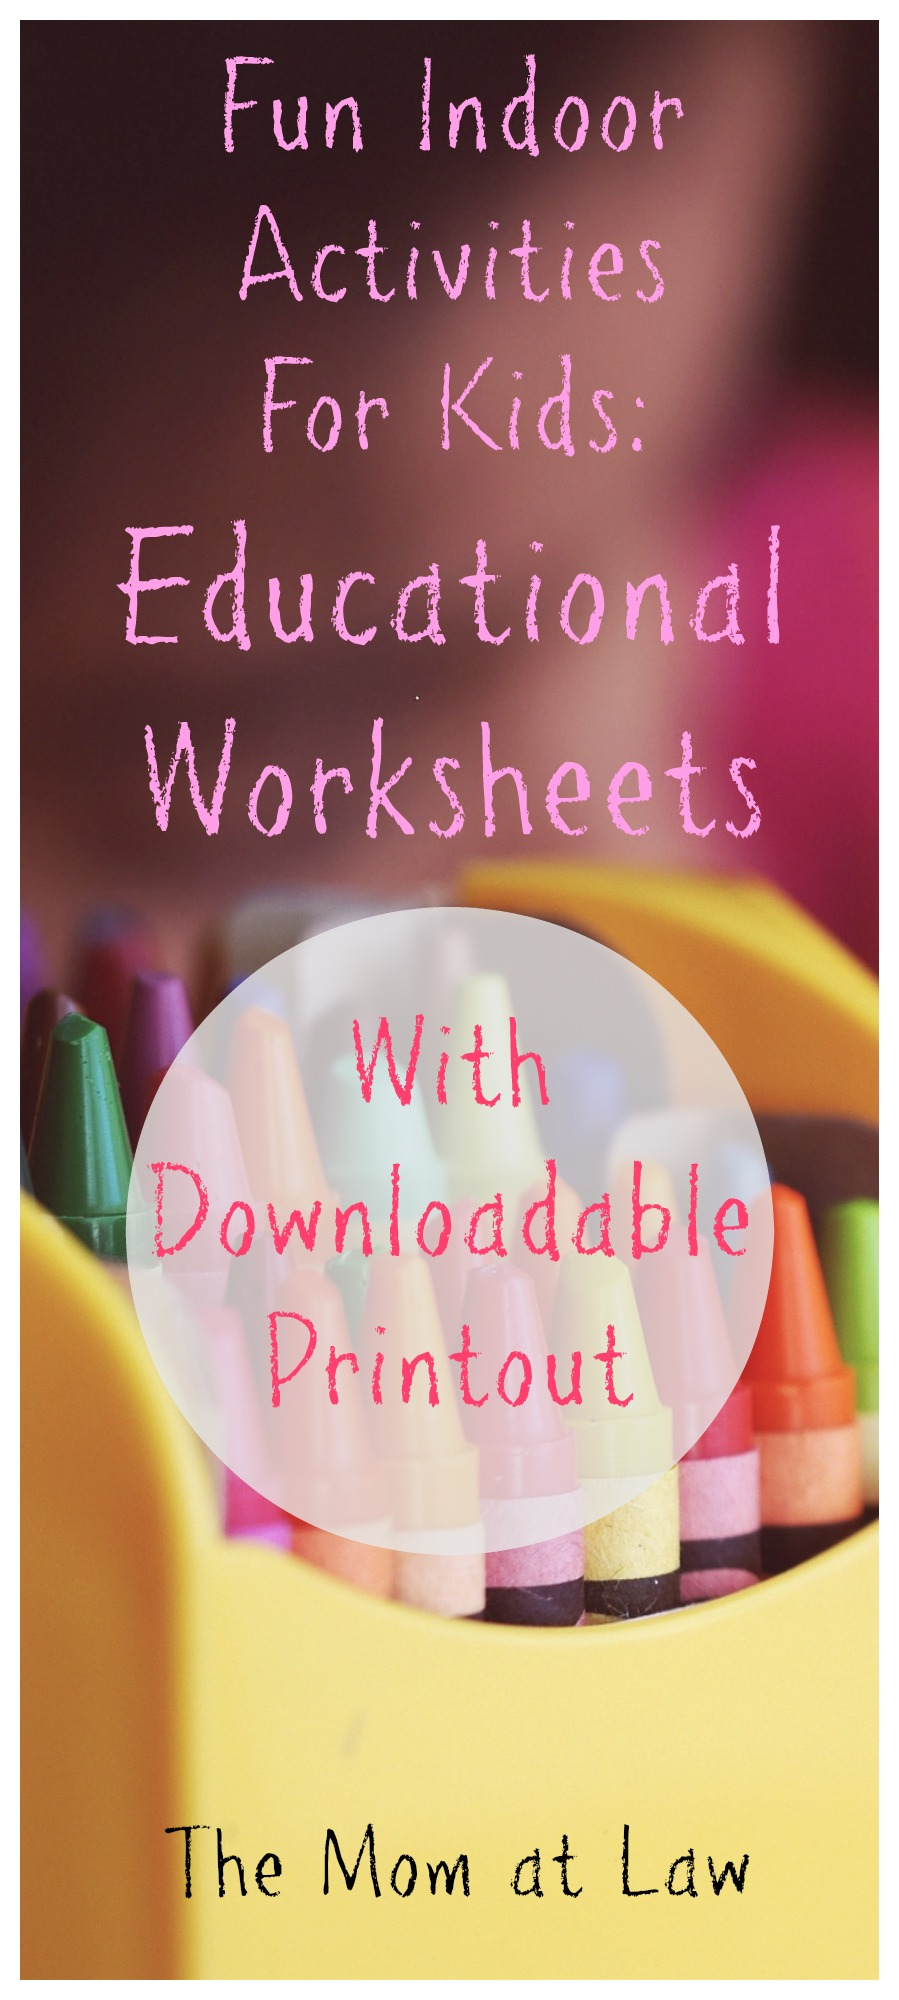 education Archives   The Mom at Law Educational Worksheets